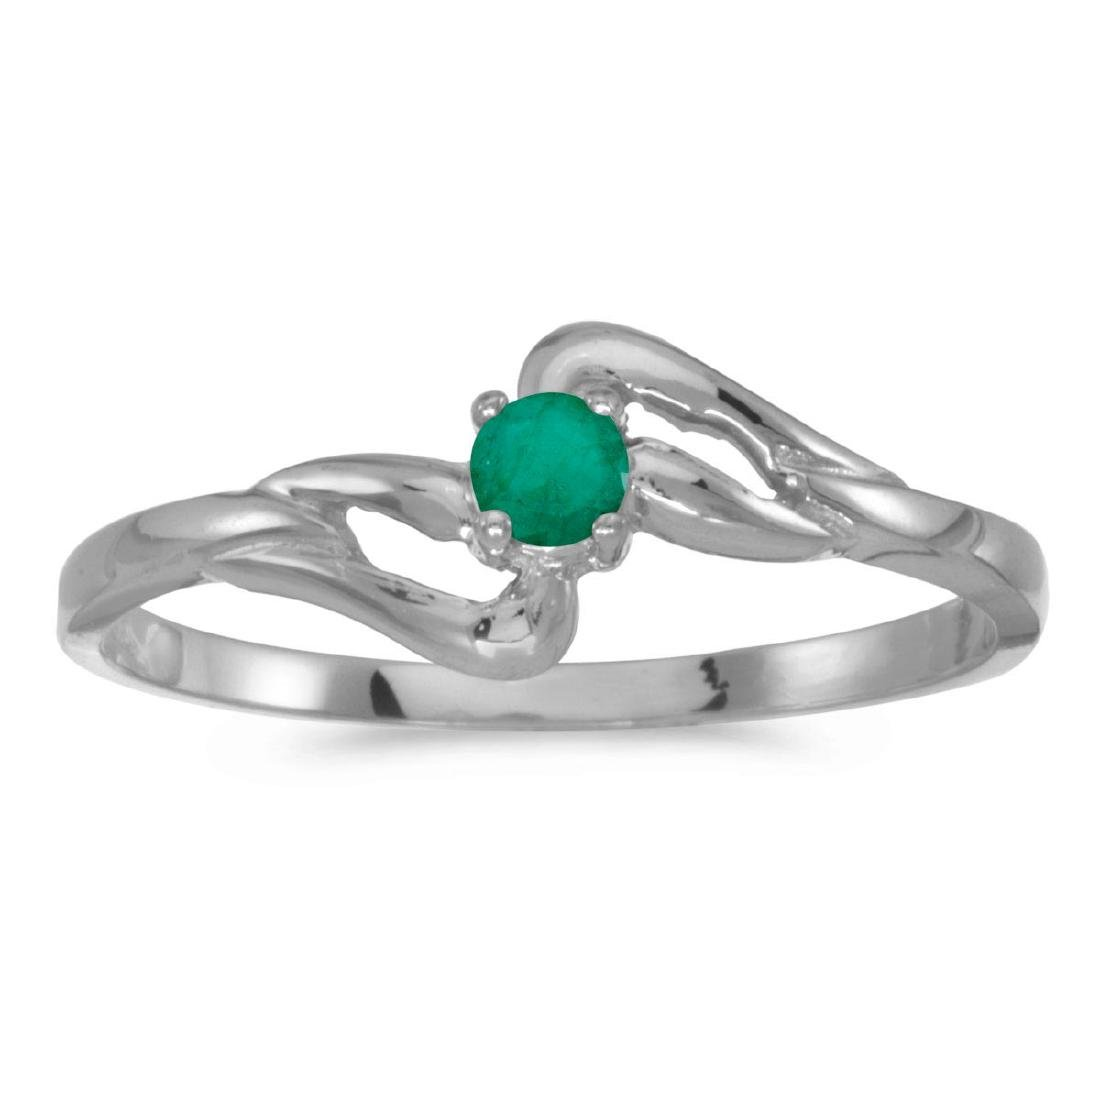 Certified 10k White Gold Round Emerald Ring 0.09 CTW